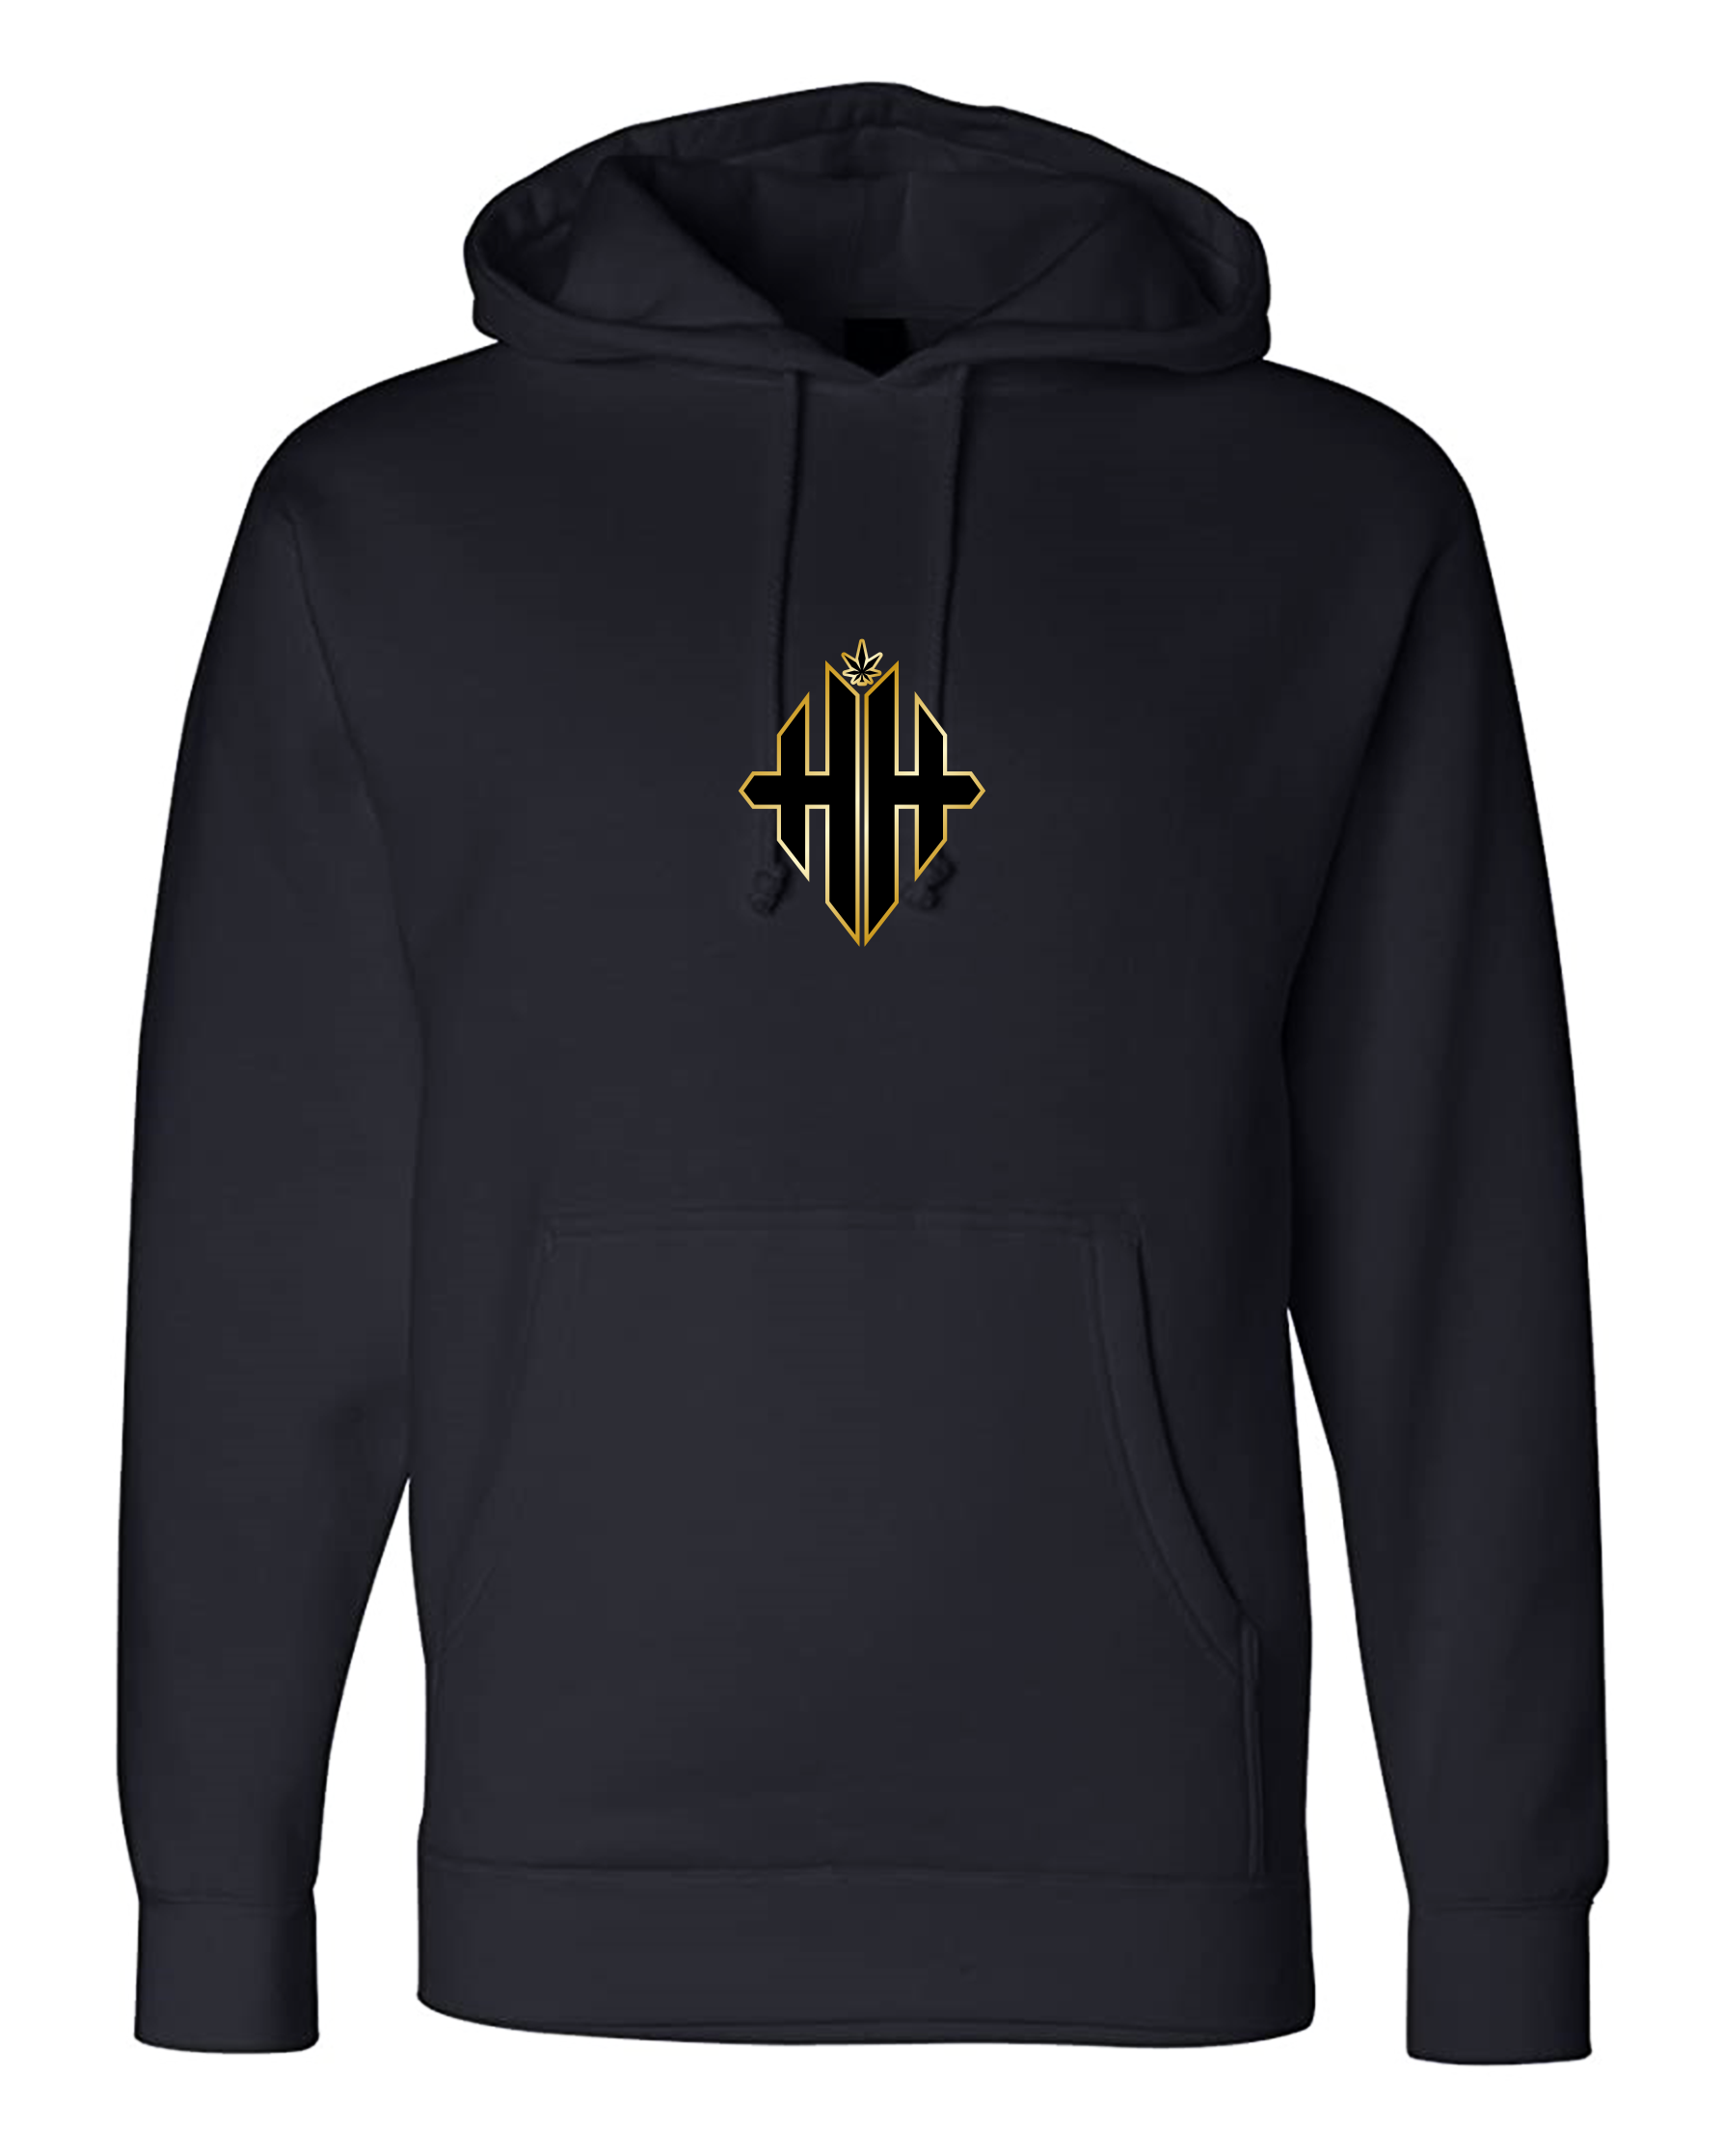 Herbman Hustlin 24K Monogram Hoodie - Black/Metallic Gold -LIMITED EDITION